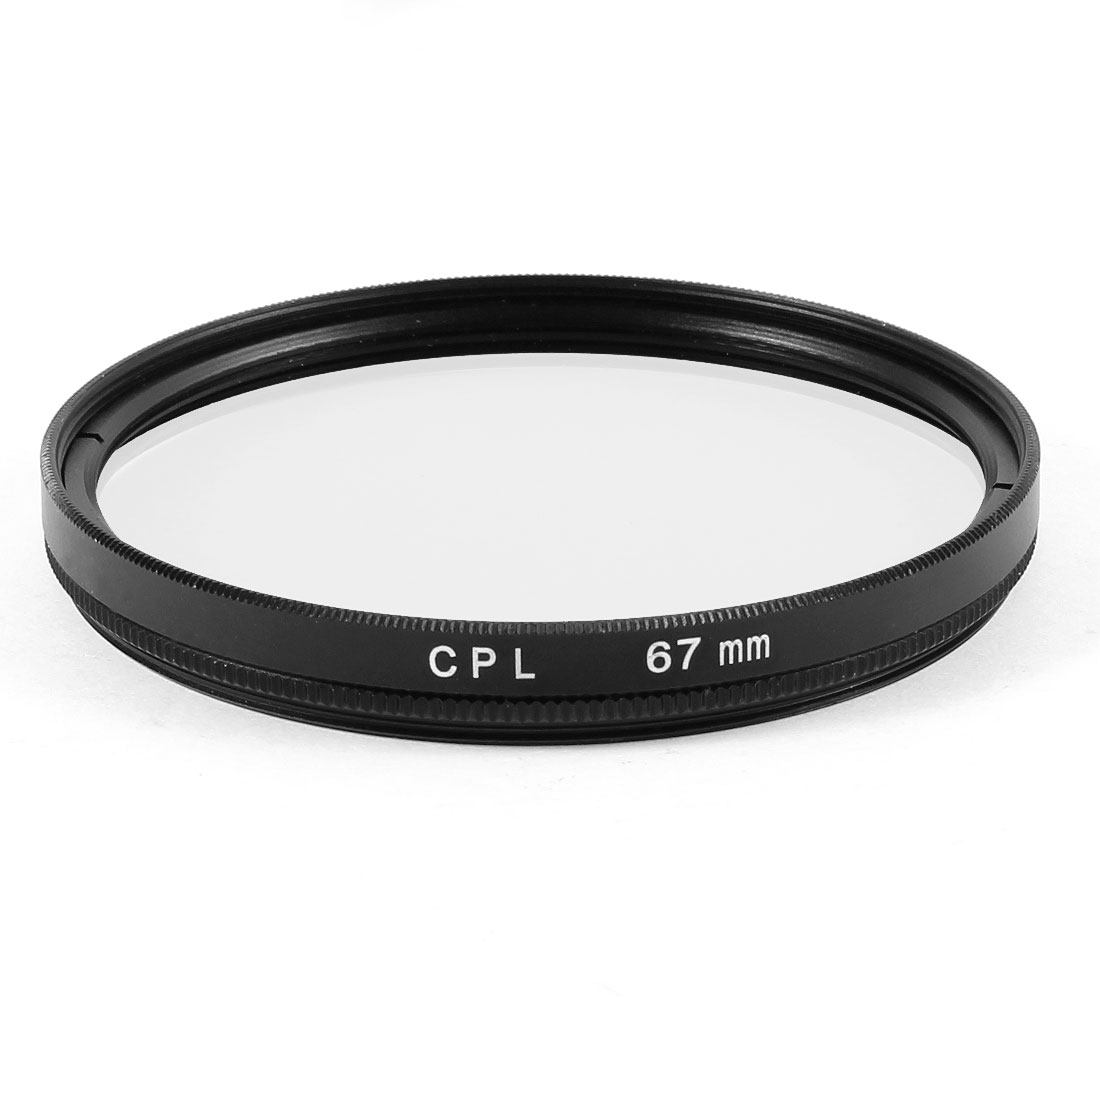 67m Circular Polarizing CPL Lens Filter Protector Black for Digital Camera